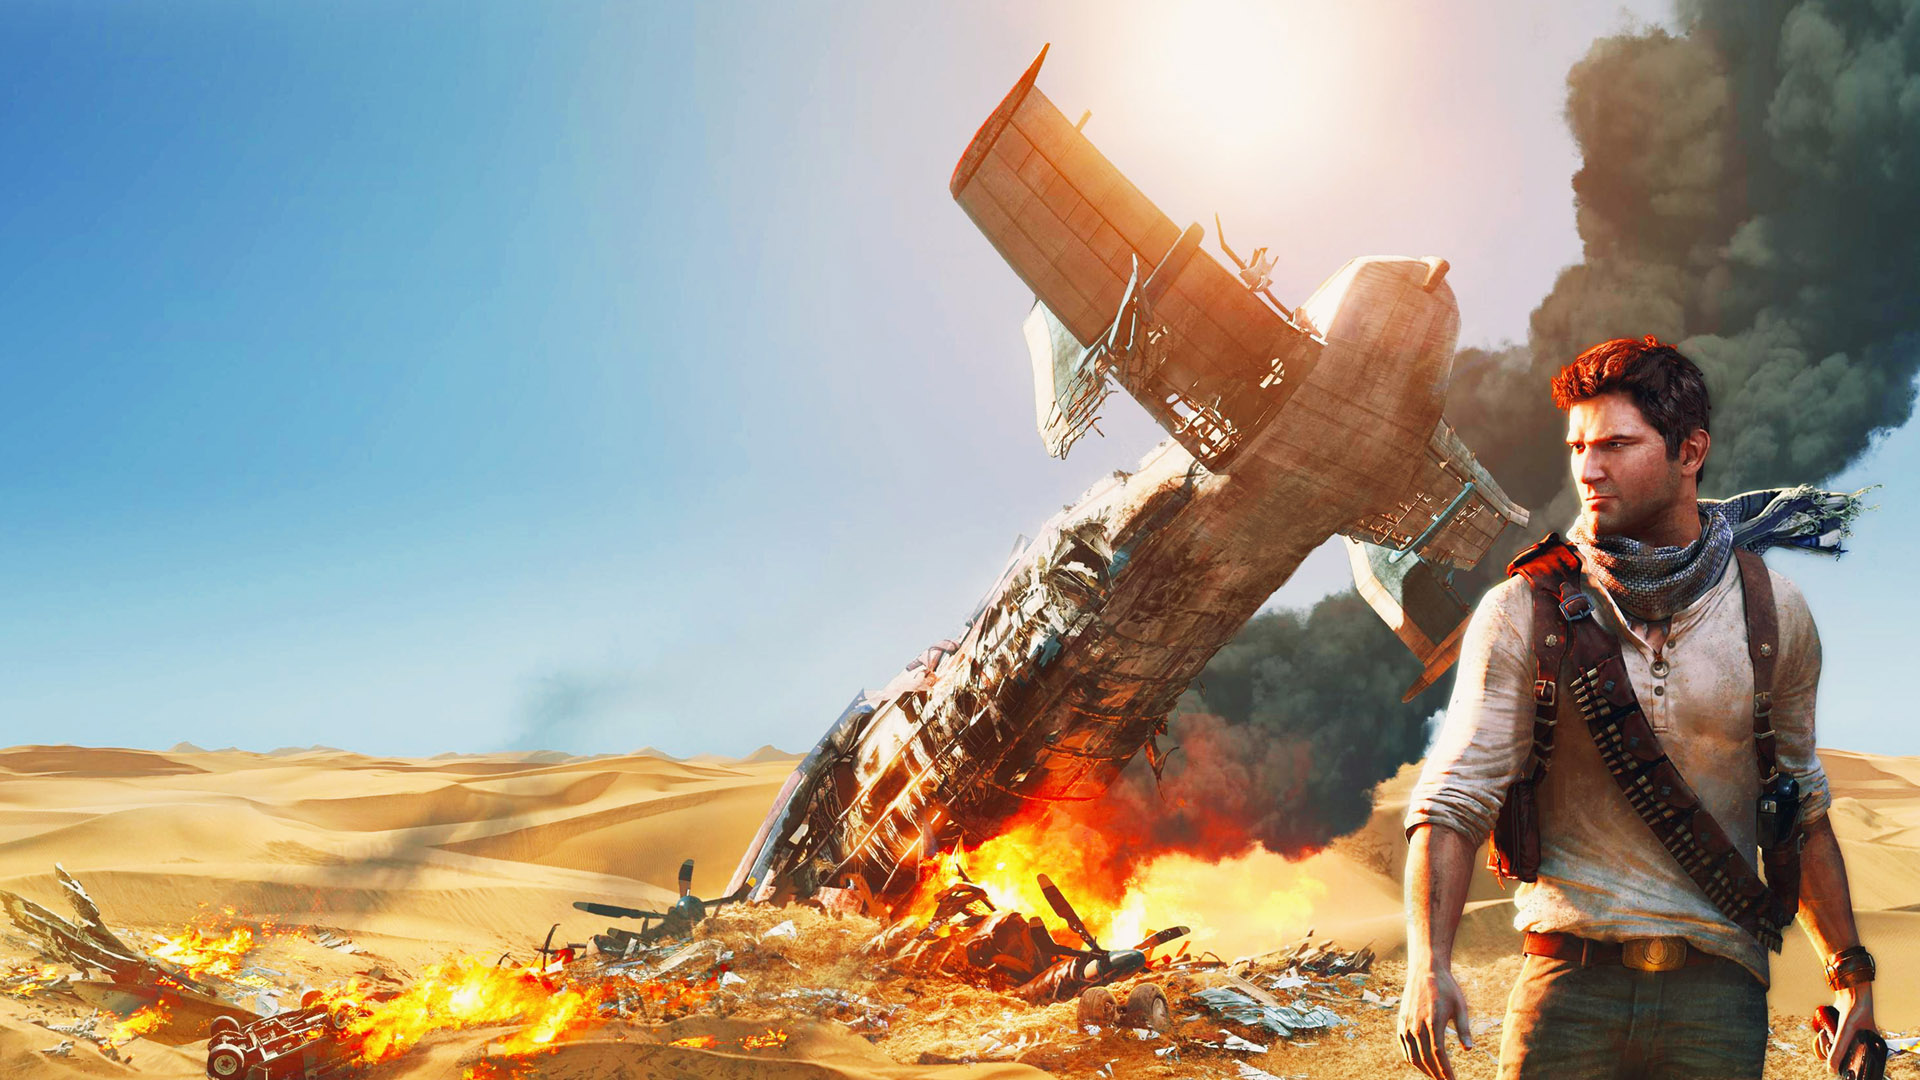 Awesome Uncharted Wallpaper 1920x1080